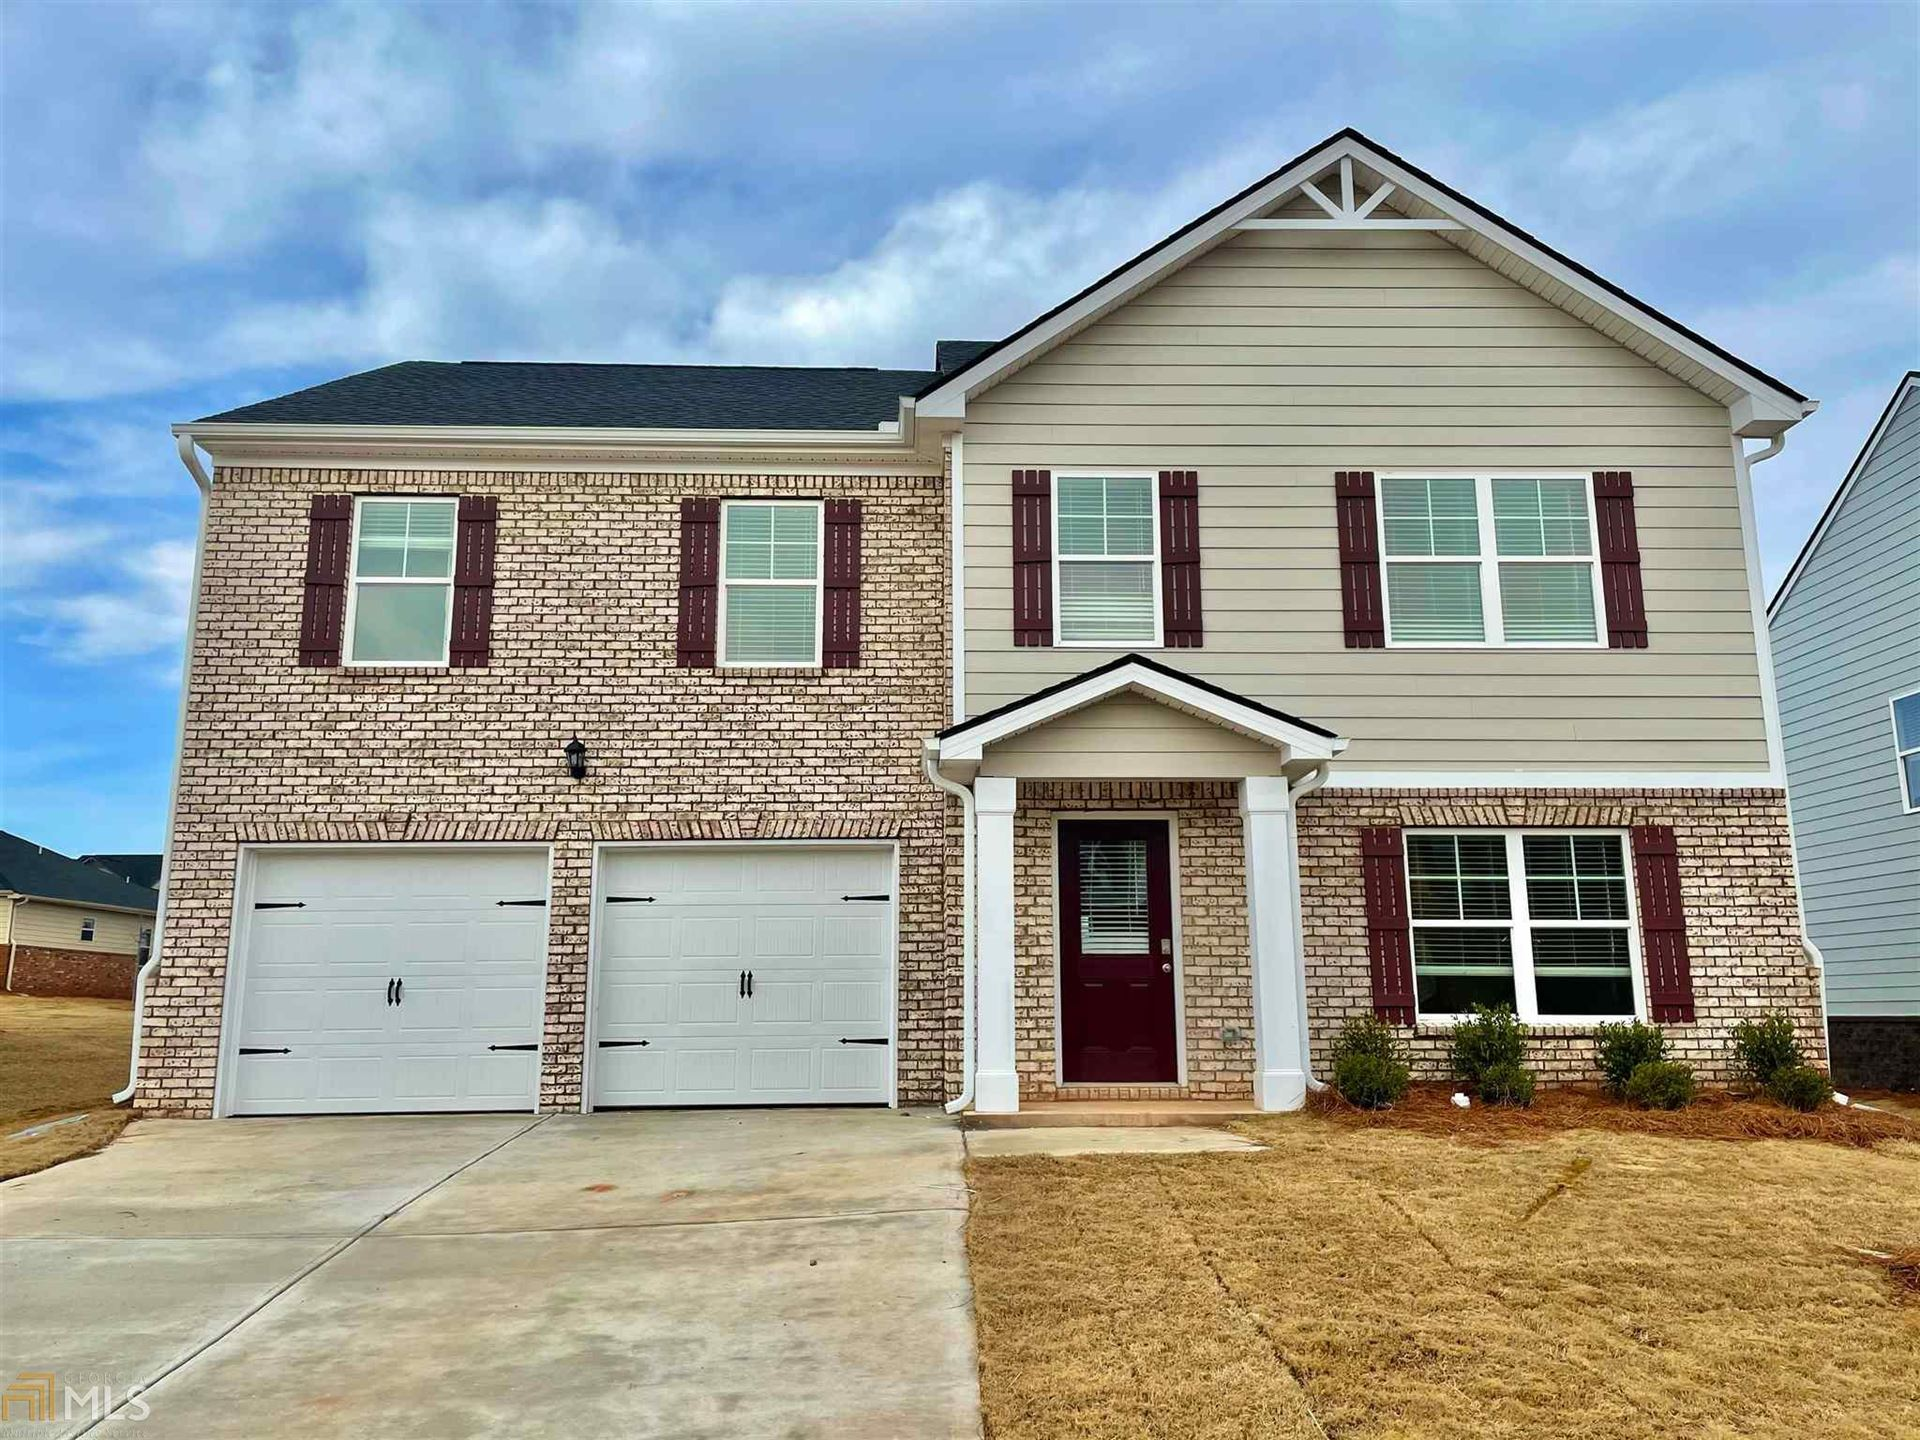 2411 Cosmo Ln, McDonough, GA 30253 - MLS#: 8875802